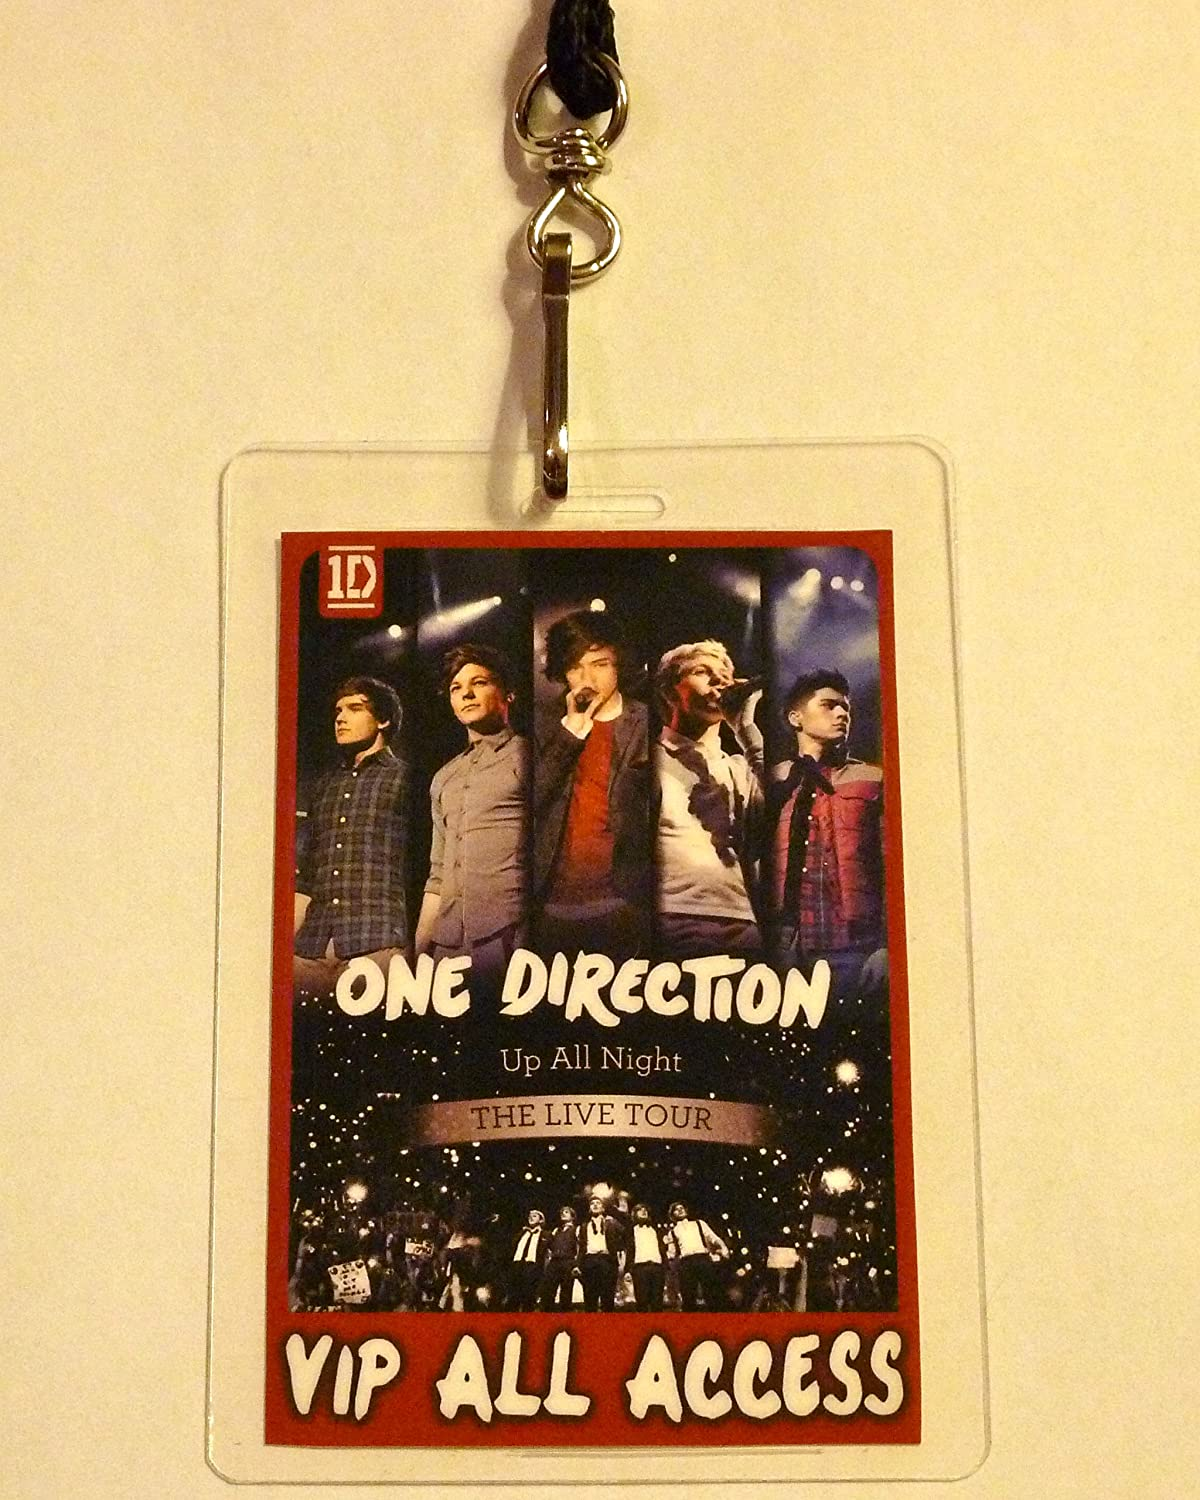 Amazon one direction 1d up all night tour vip all access amazon one direction 1d up all night tour vip all access backstage meet greet package pass with lanyard other products everything else m4hsunfo